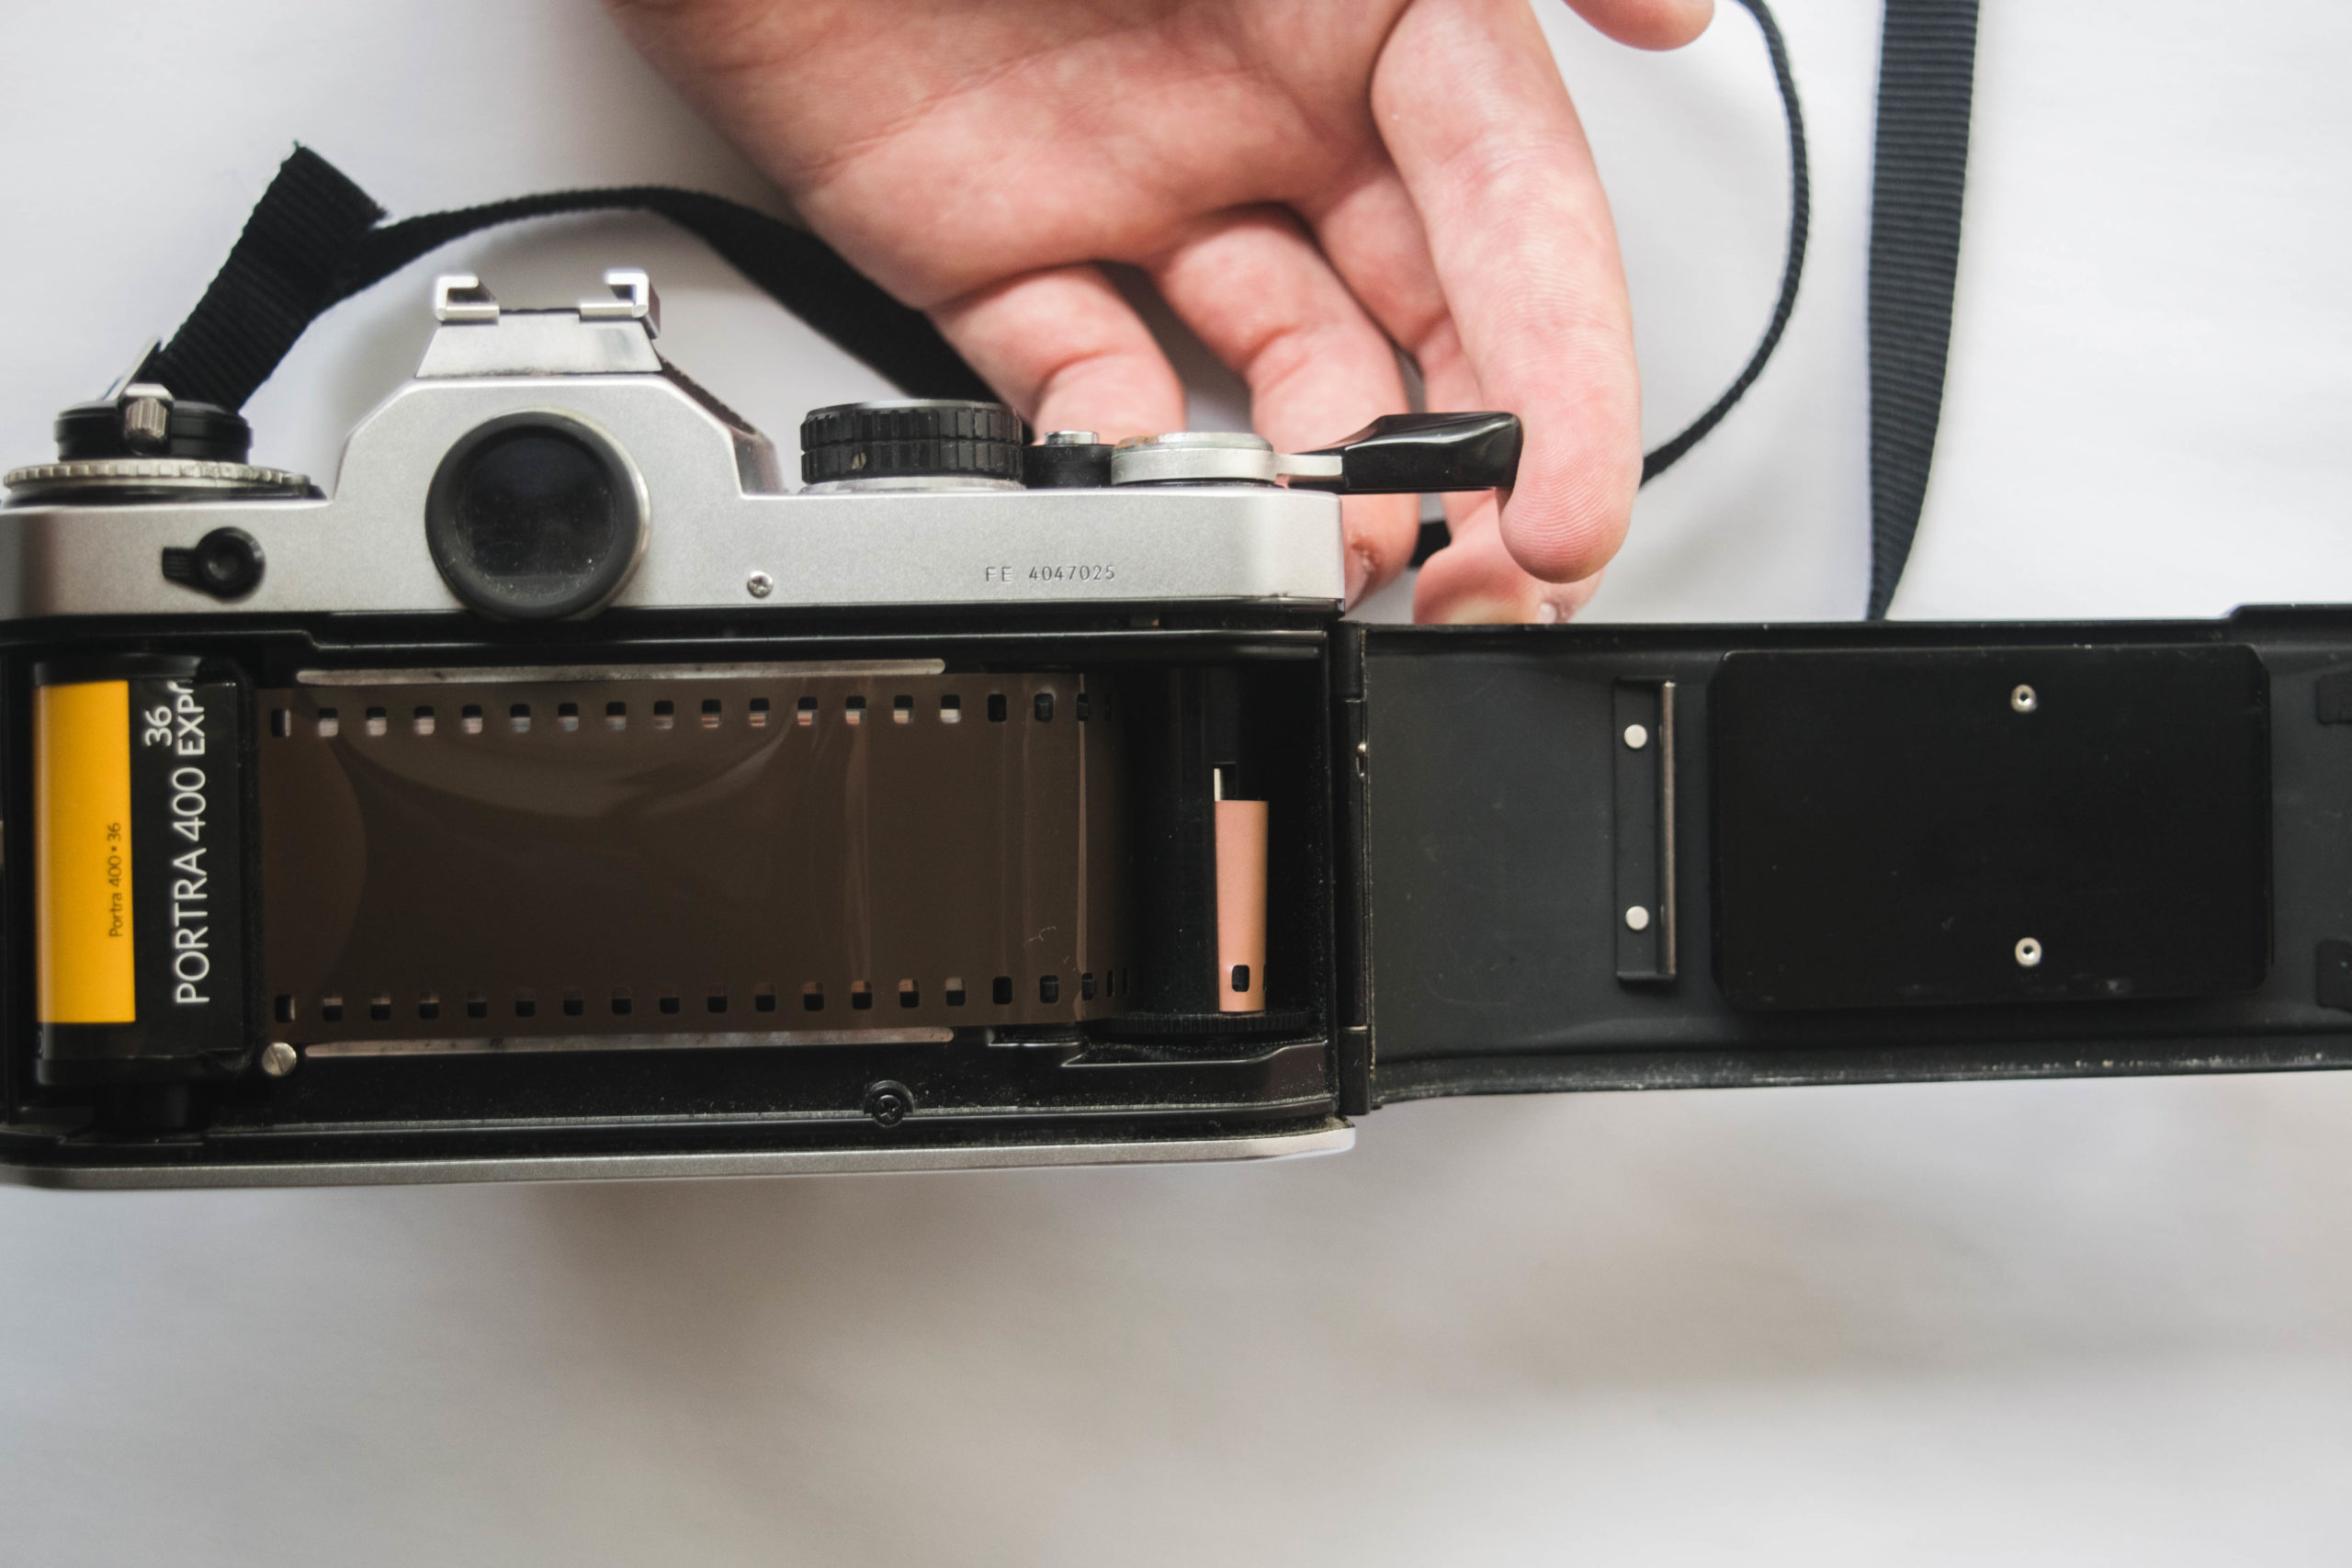 Emulsion Side - How to Load Film into a 35mm Film Camera - FilterGrade Blog